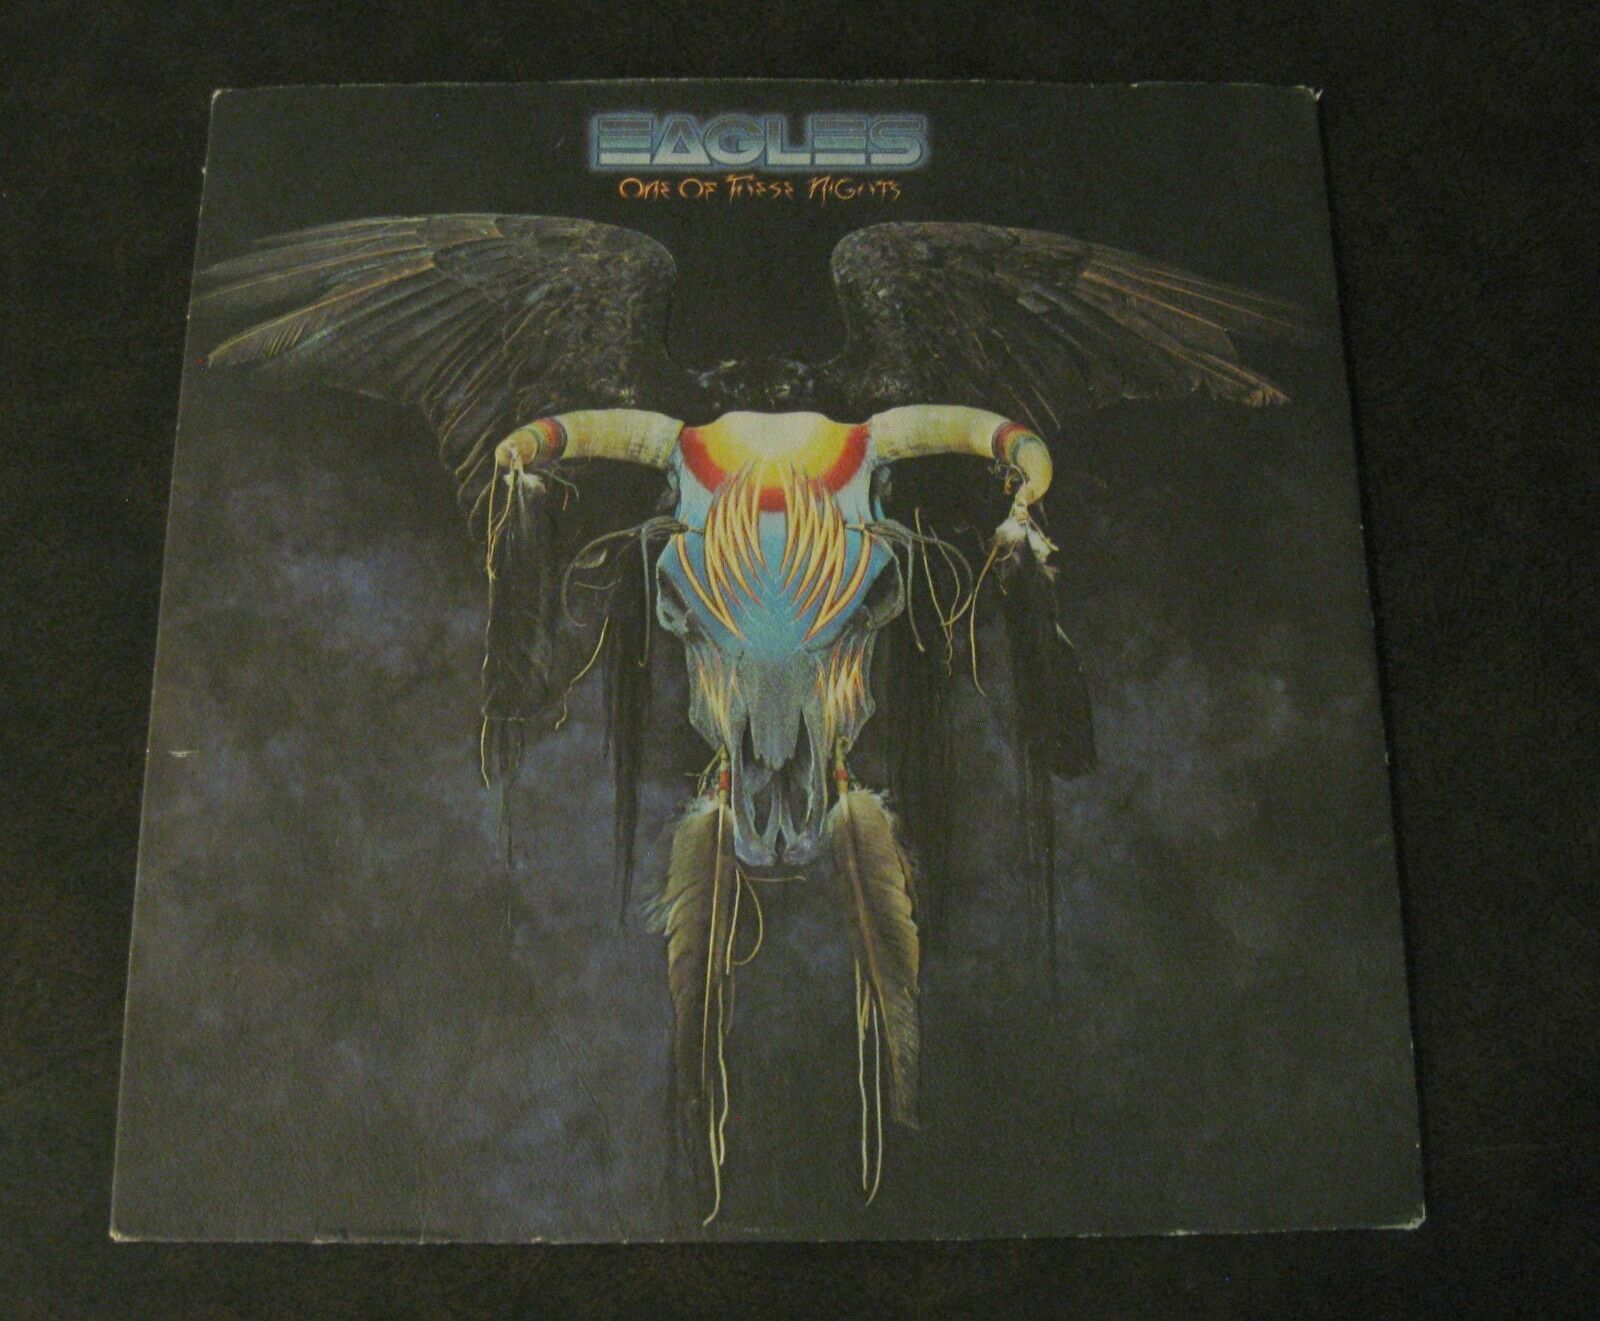 Eagles One Of These Nights Asylum 7E-1039 Stereo Vinyl Record Textured Cover